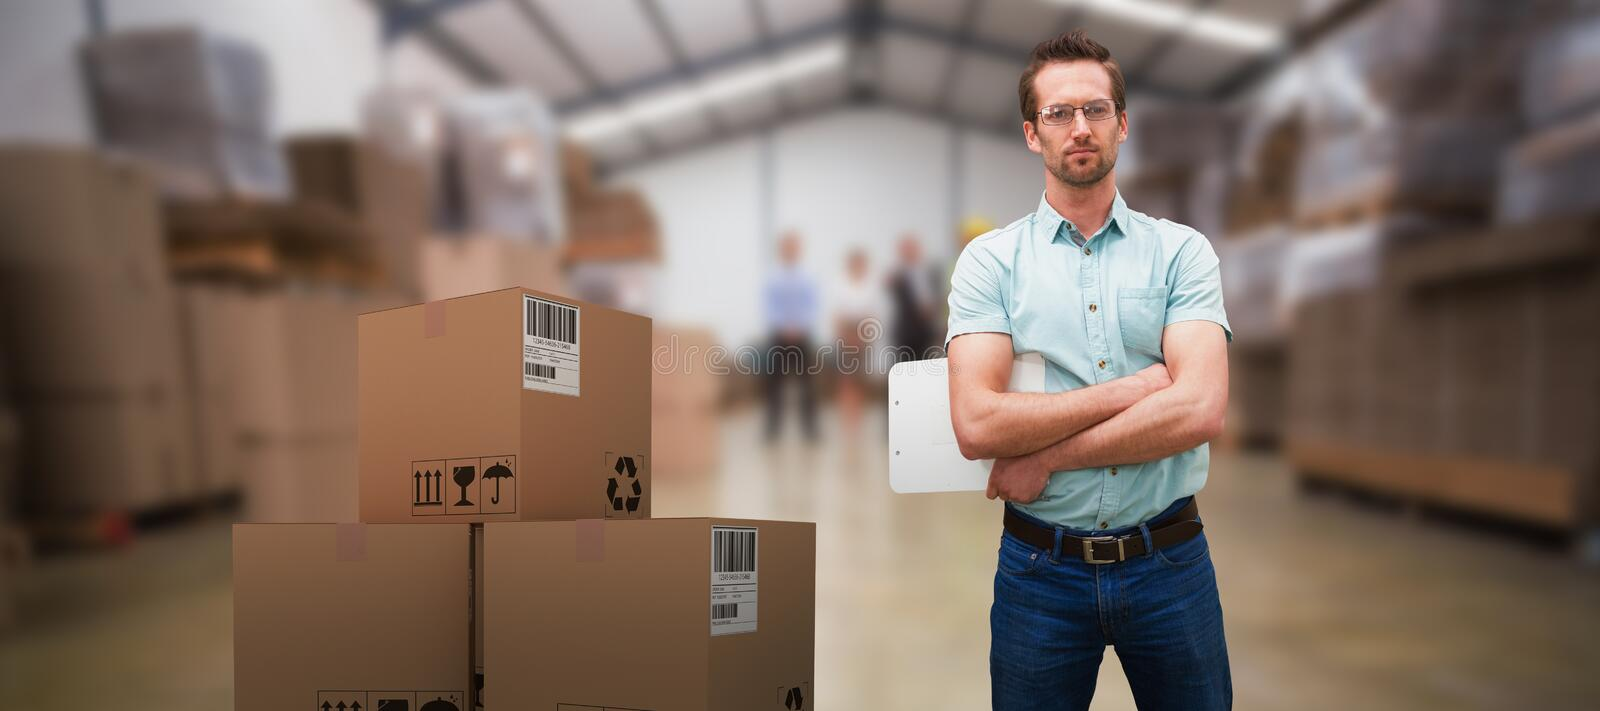 Composite 3d image of serious warehouse manager standing with arms crossed royalty free stock photo